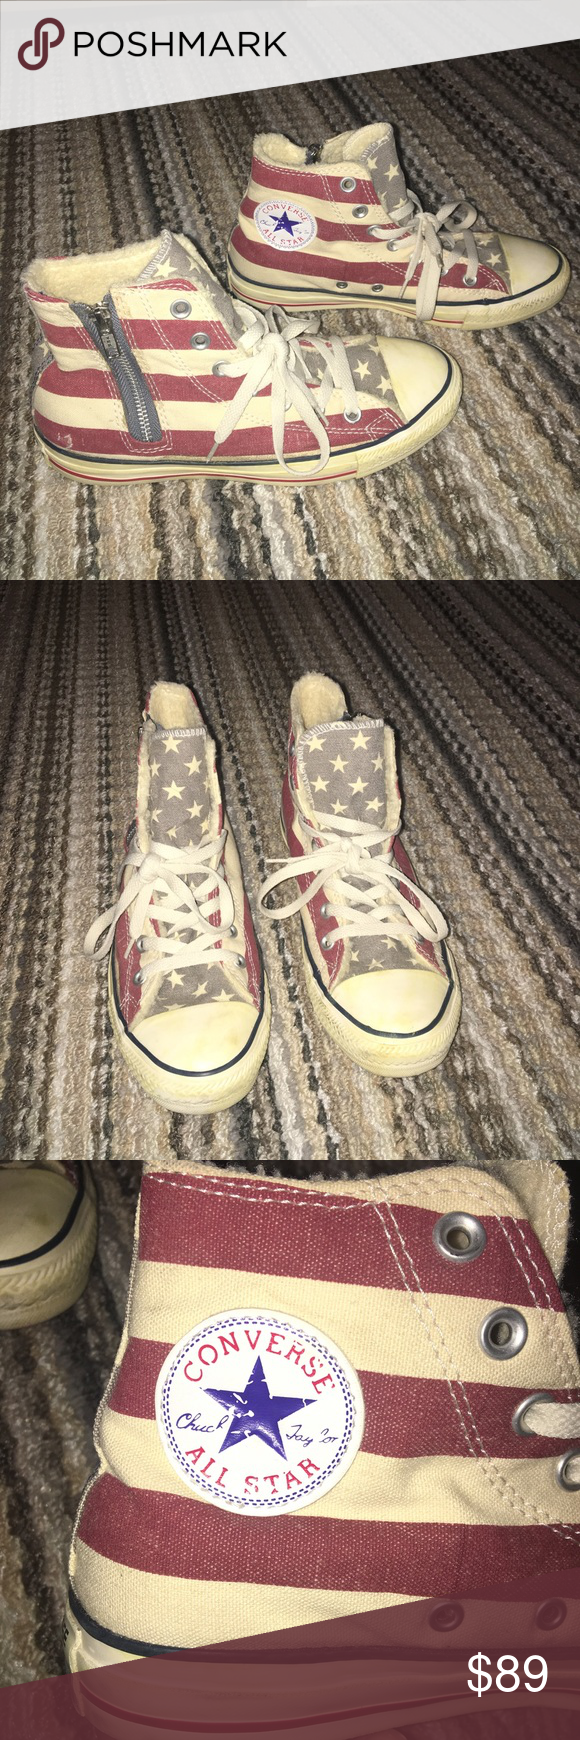 5afa730ed1b2 Distressed American Flag Converse High Top converses. Made to look  weathered or distressed. American flag pattern. Soft inside makes them  extremely ...